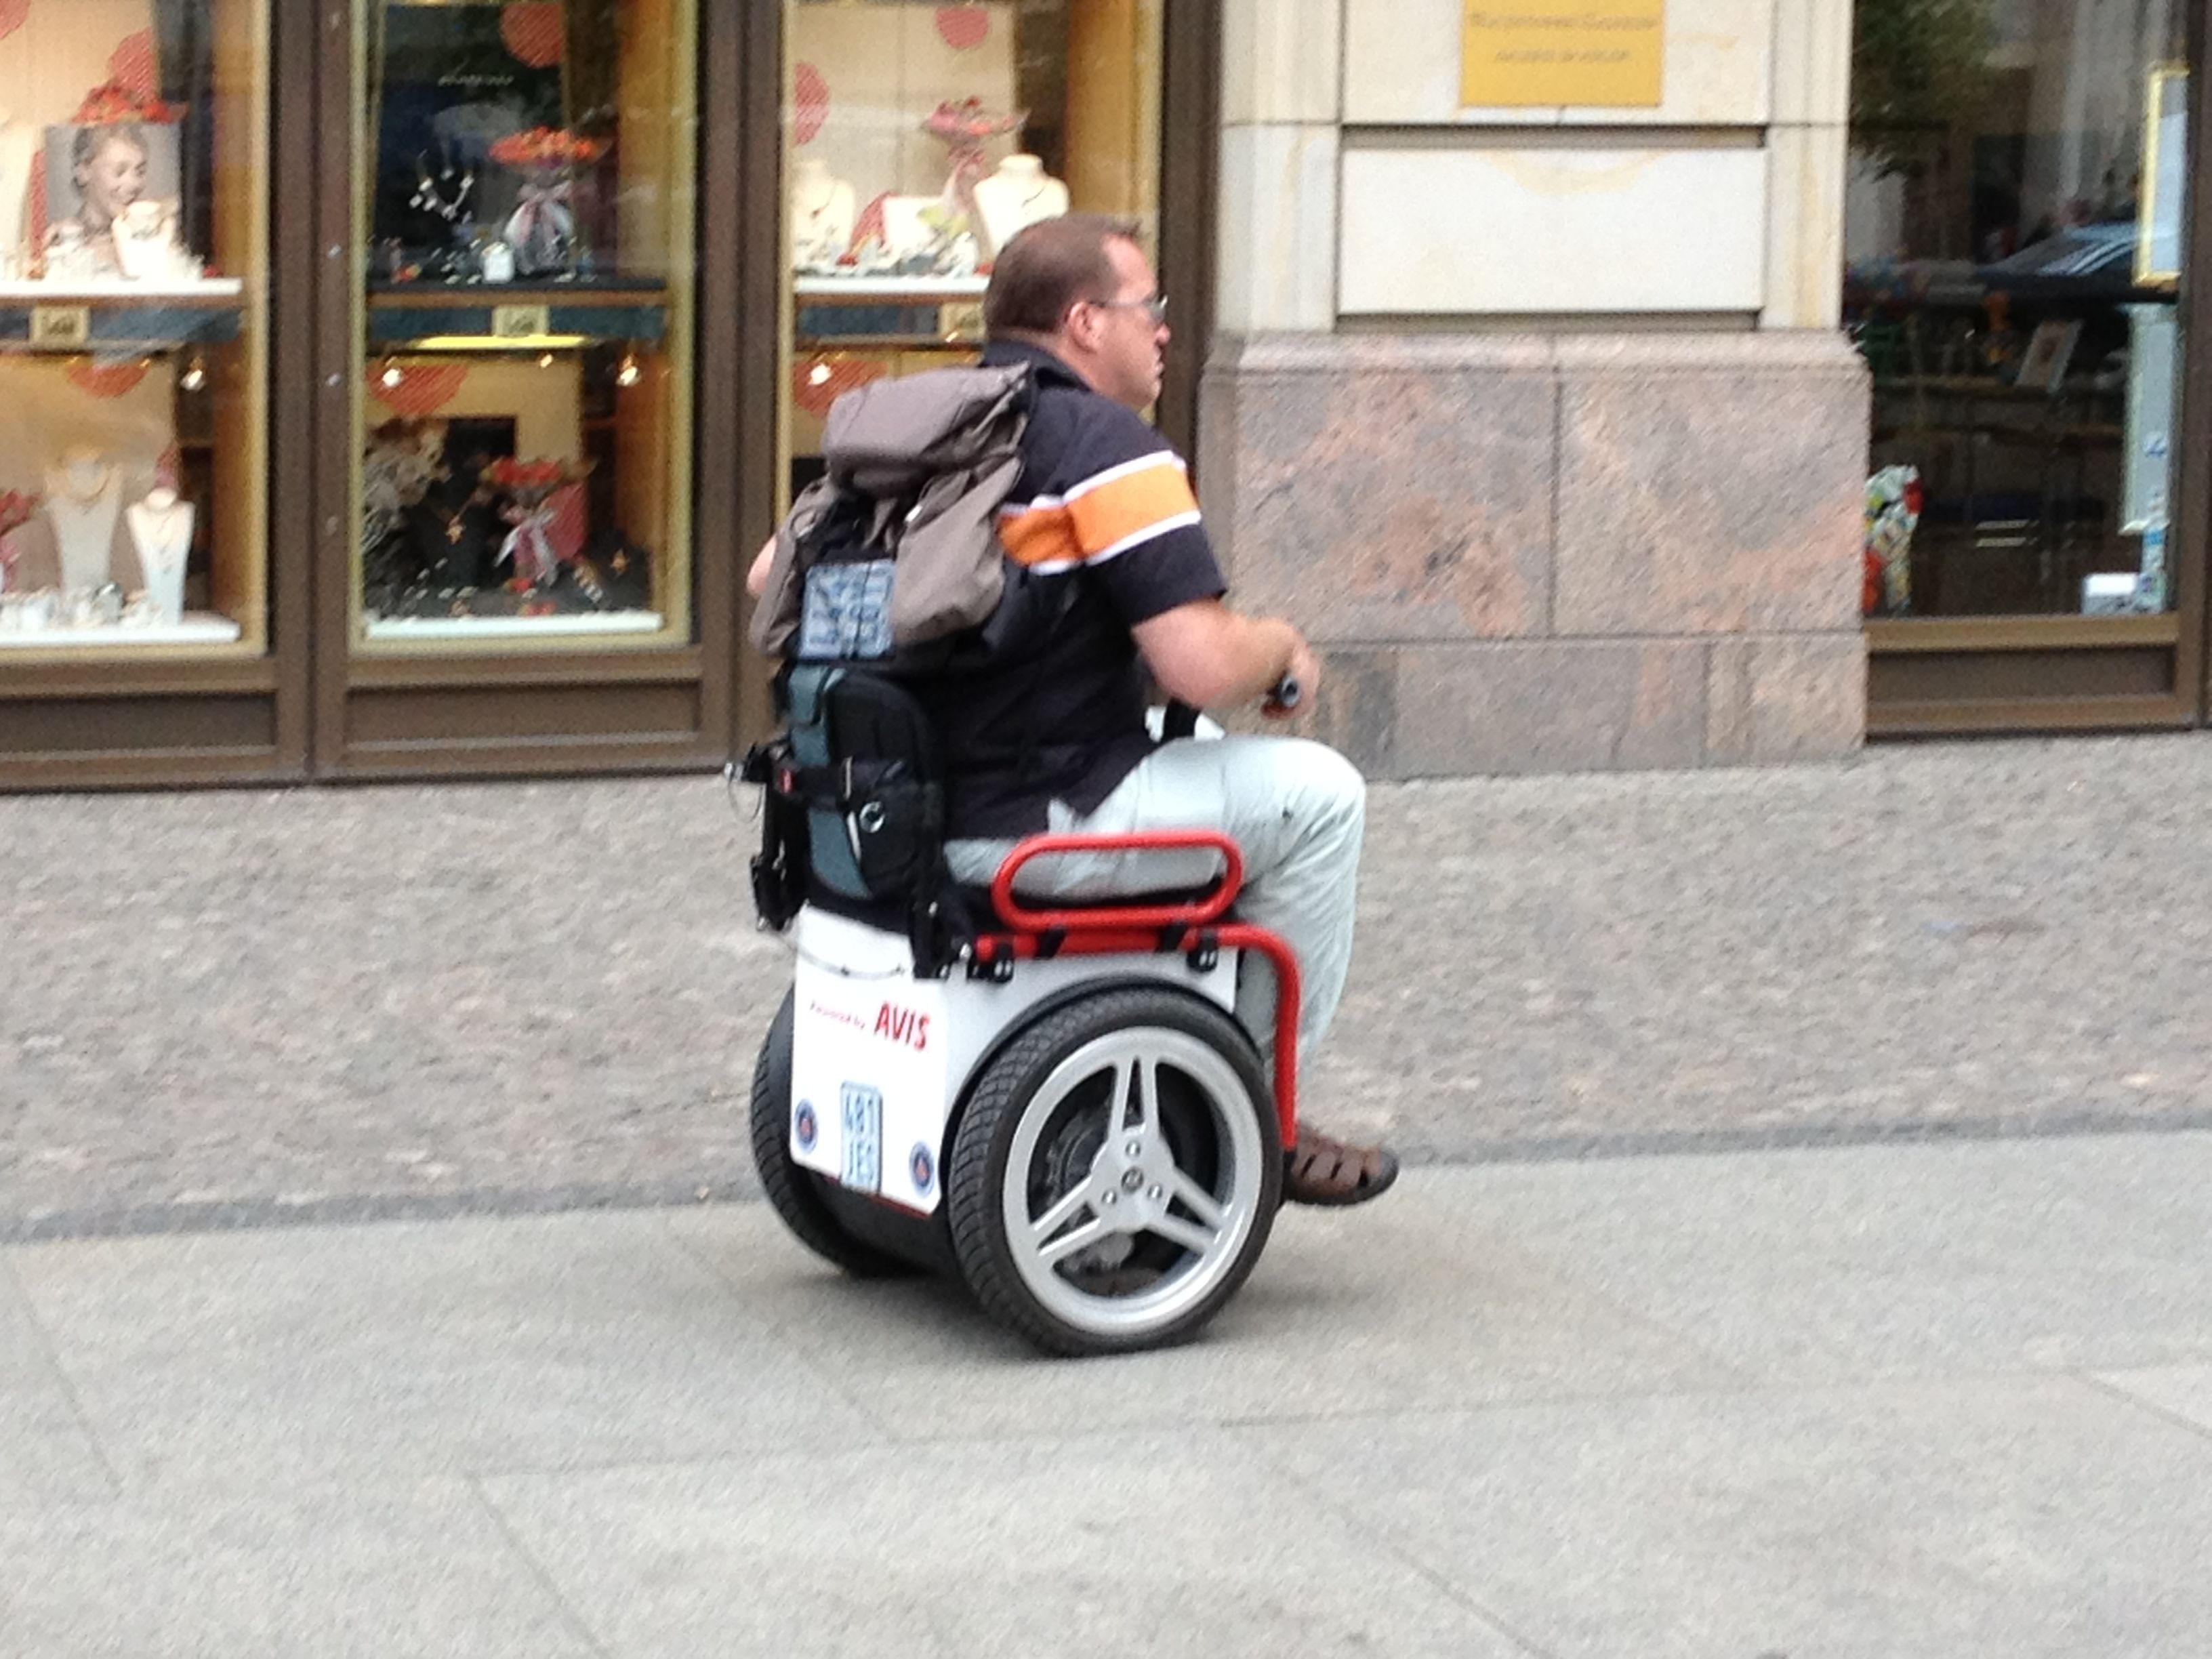 Berlin has some pretty cool wheelchairs. This one has a Segway ...